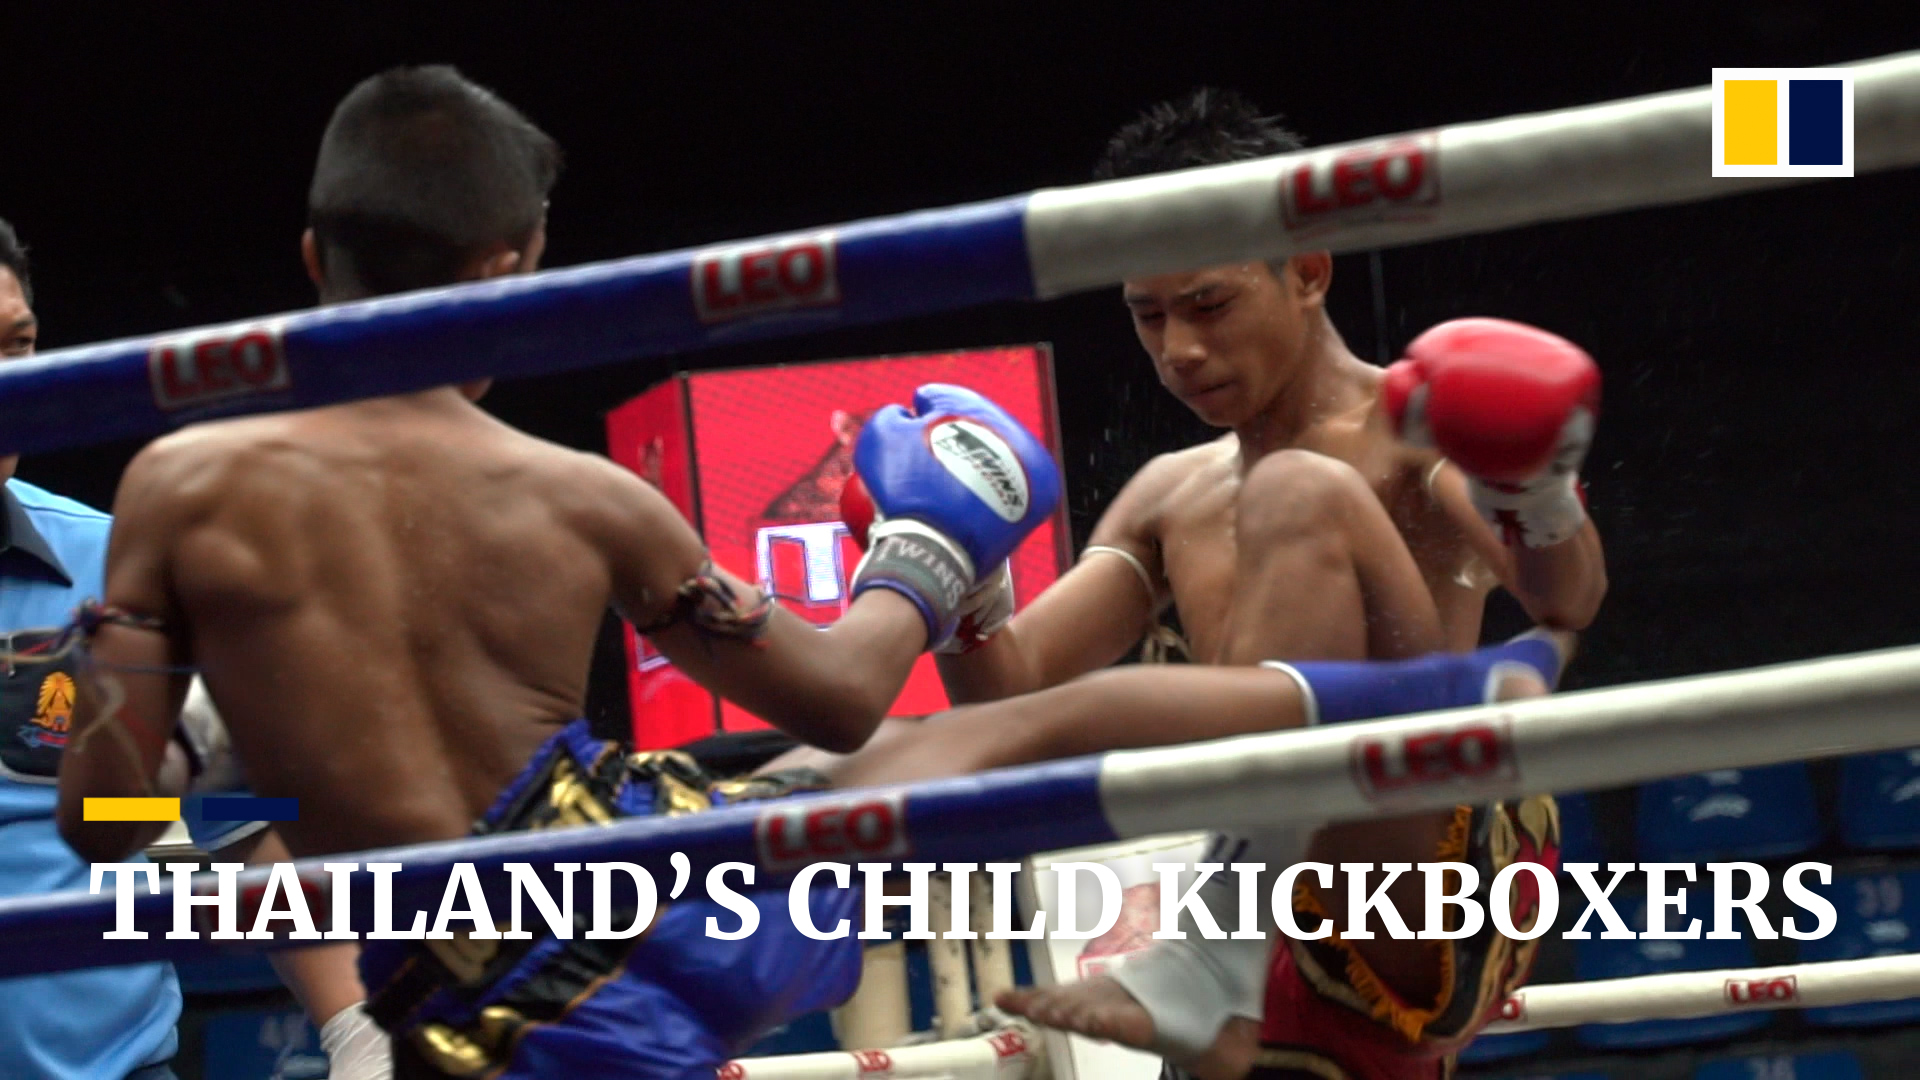 Thailand's child kick-boxers face an often deadly fight to